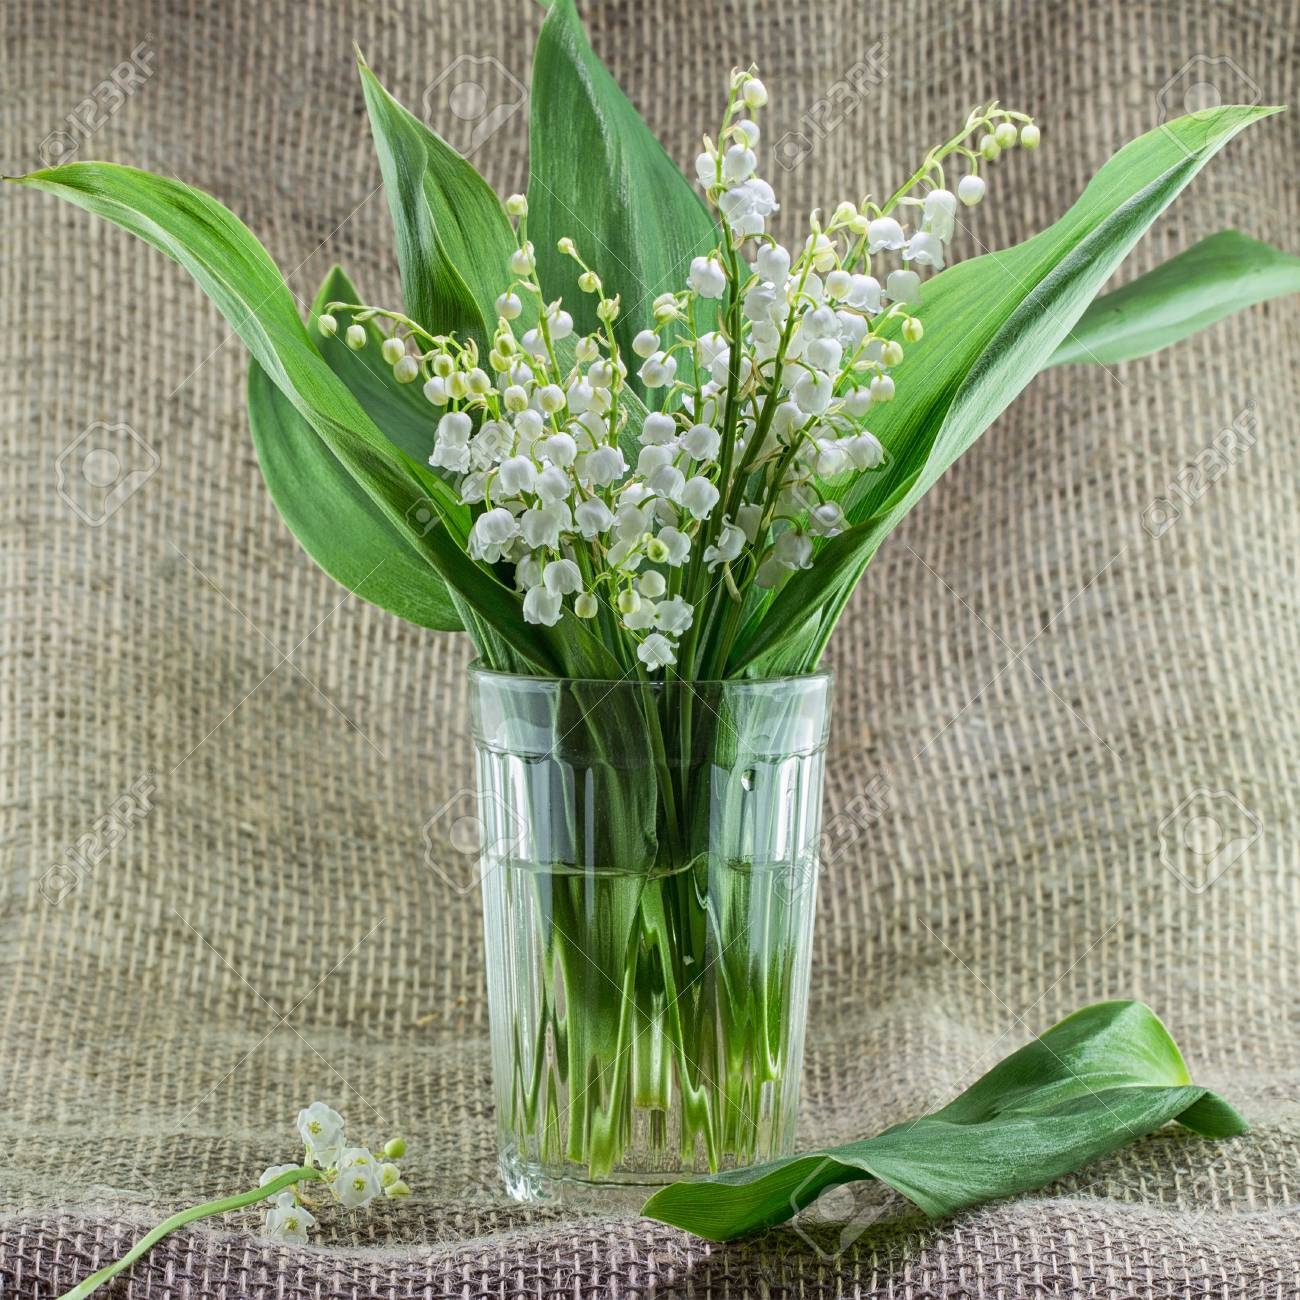 A Bouquet Of Lilies Of The Valley In A Simple Glass Vase On A.. Stock  Photo, Picture And Royalty Free Image. Image 101581294.